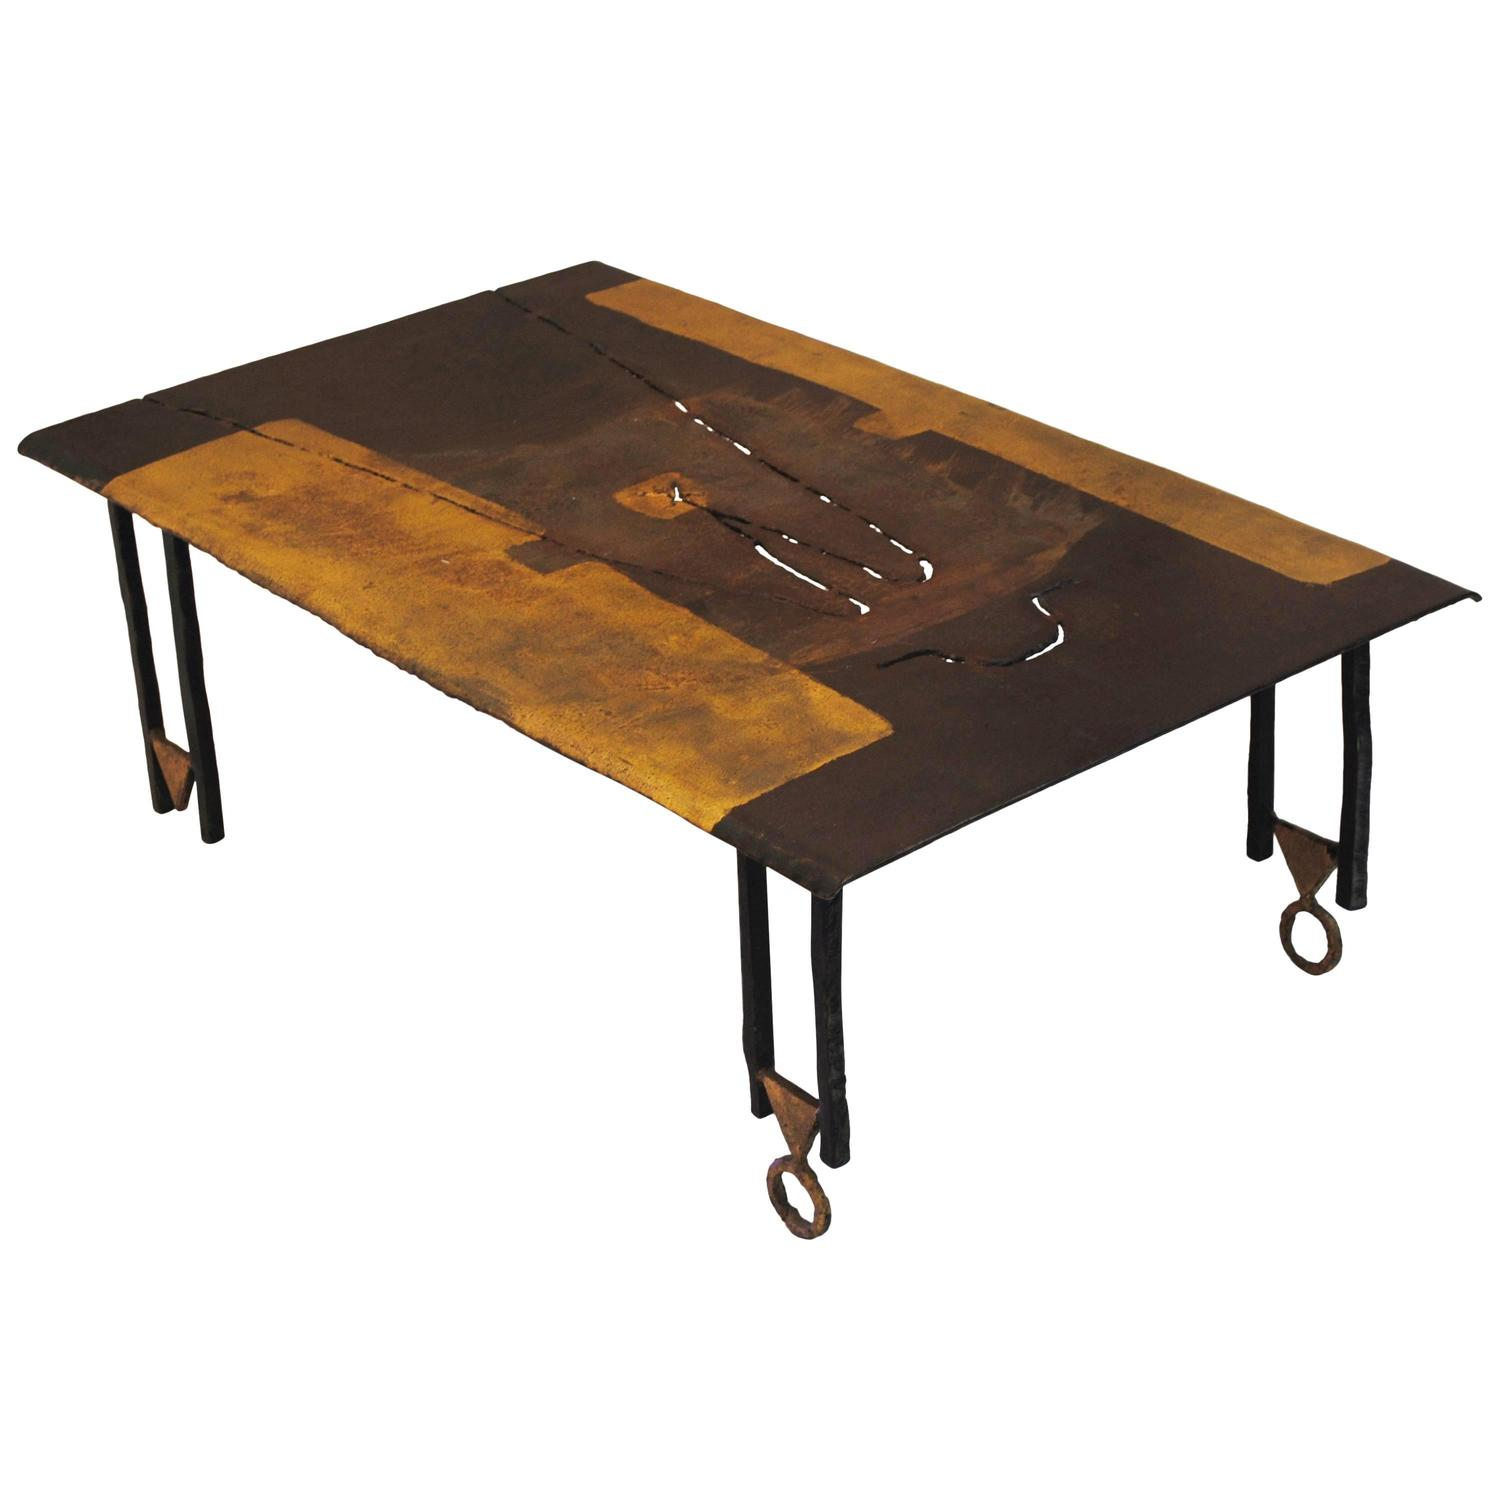 Brutalist Wrought Iron Coffee Table by Jean Jacques Argueyrolles